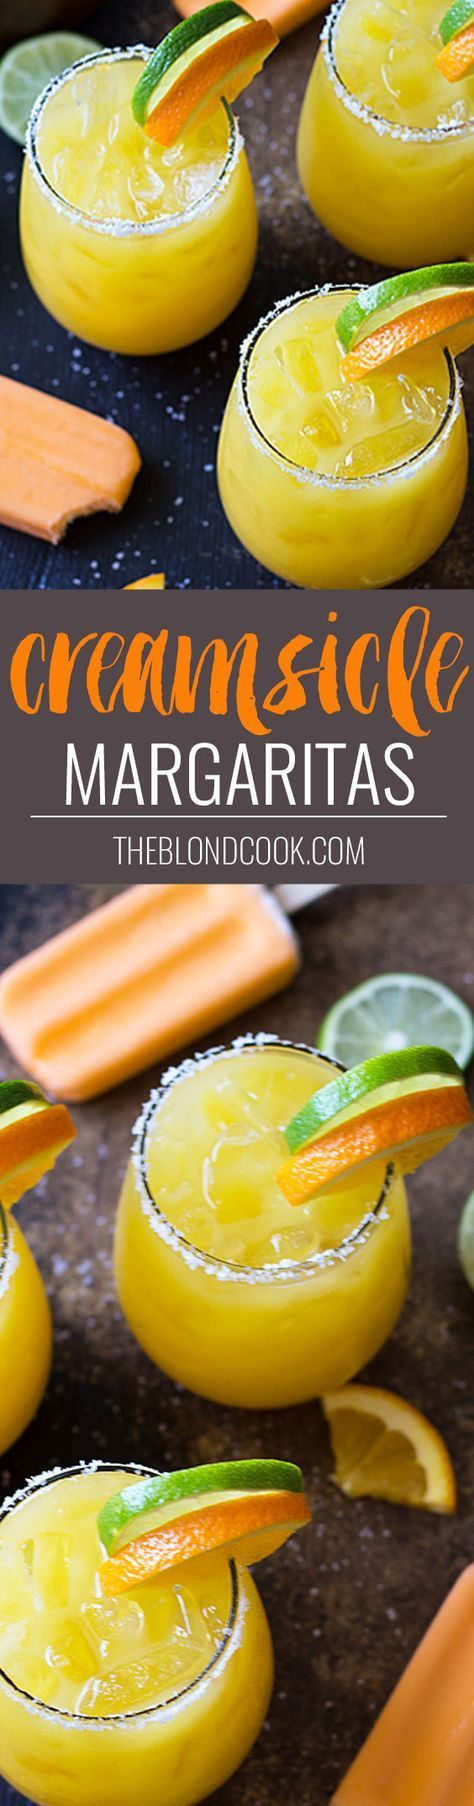 Creamsicle Margaritas - Tequila, whipped vodka, orange juice, triple sec and lime juice come together in the ultimate creamy orange margarita!